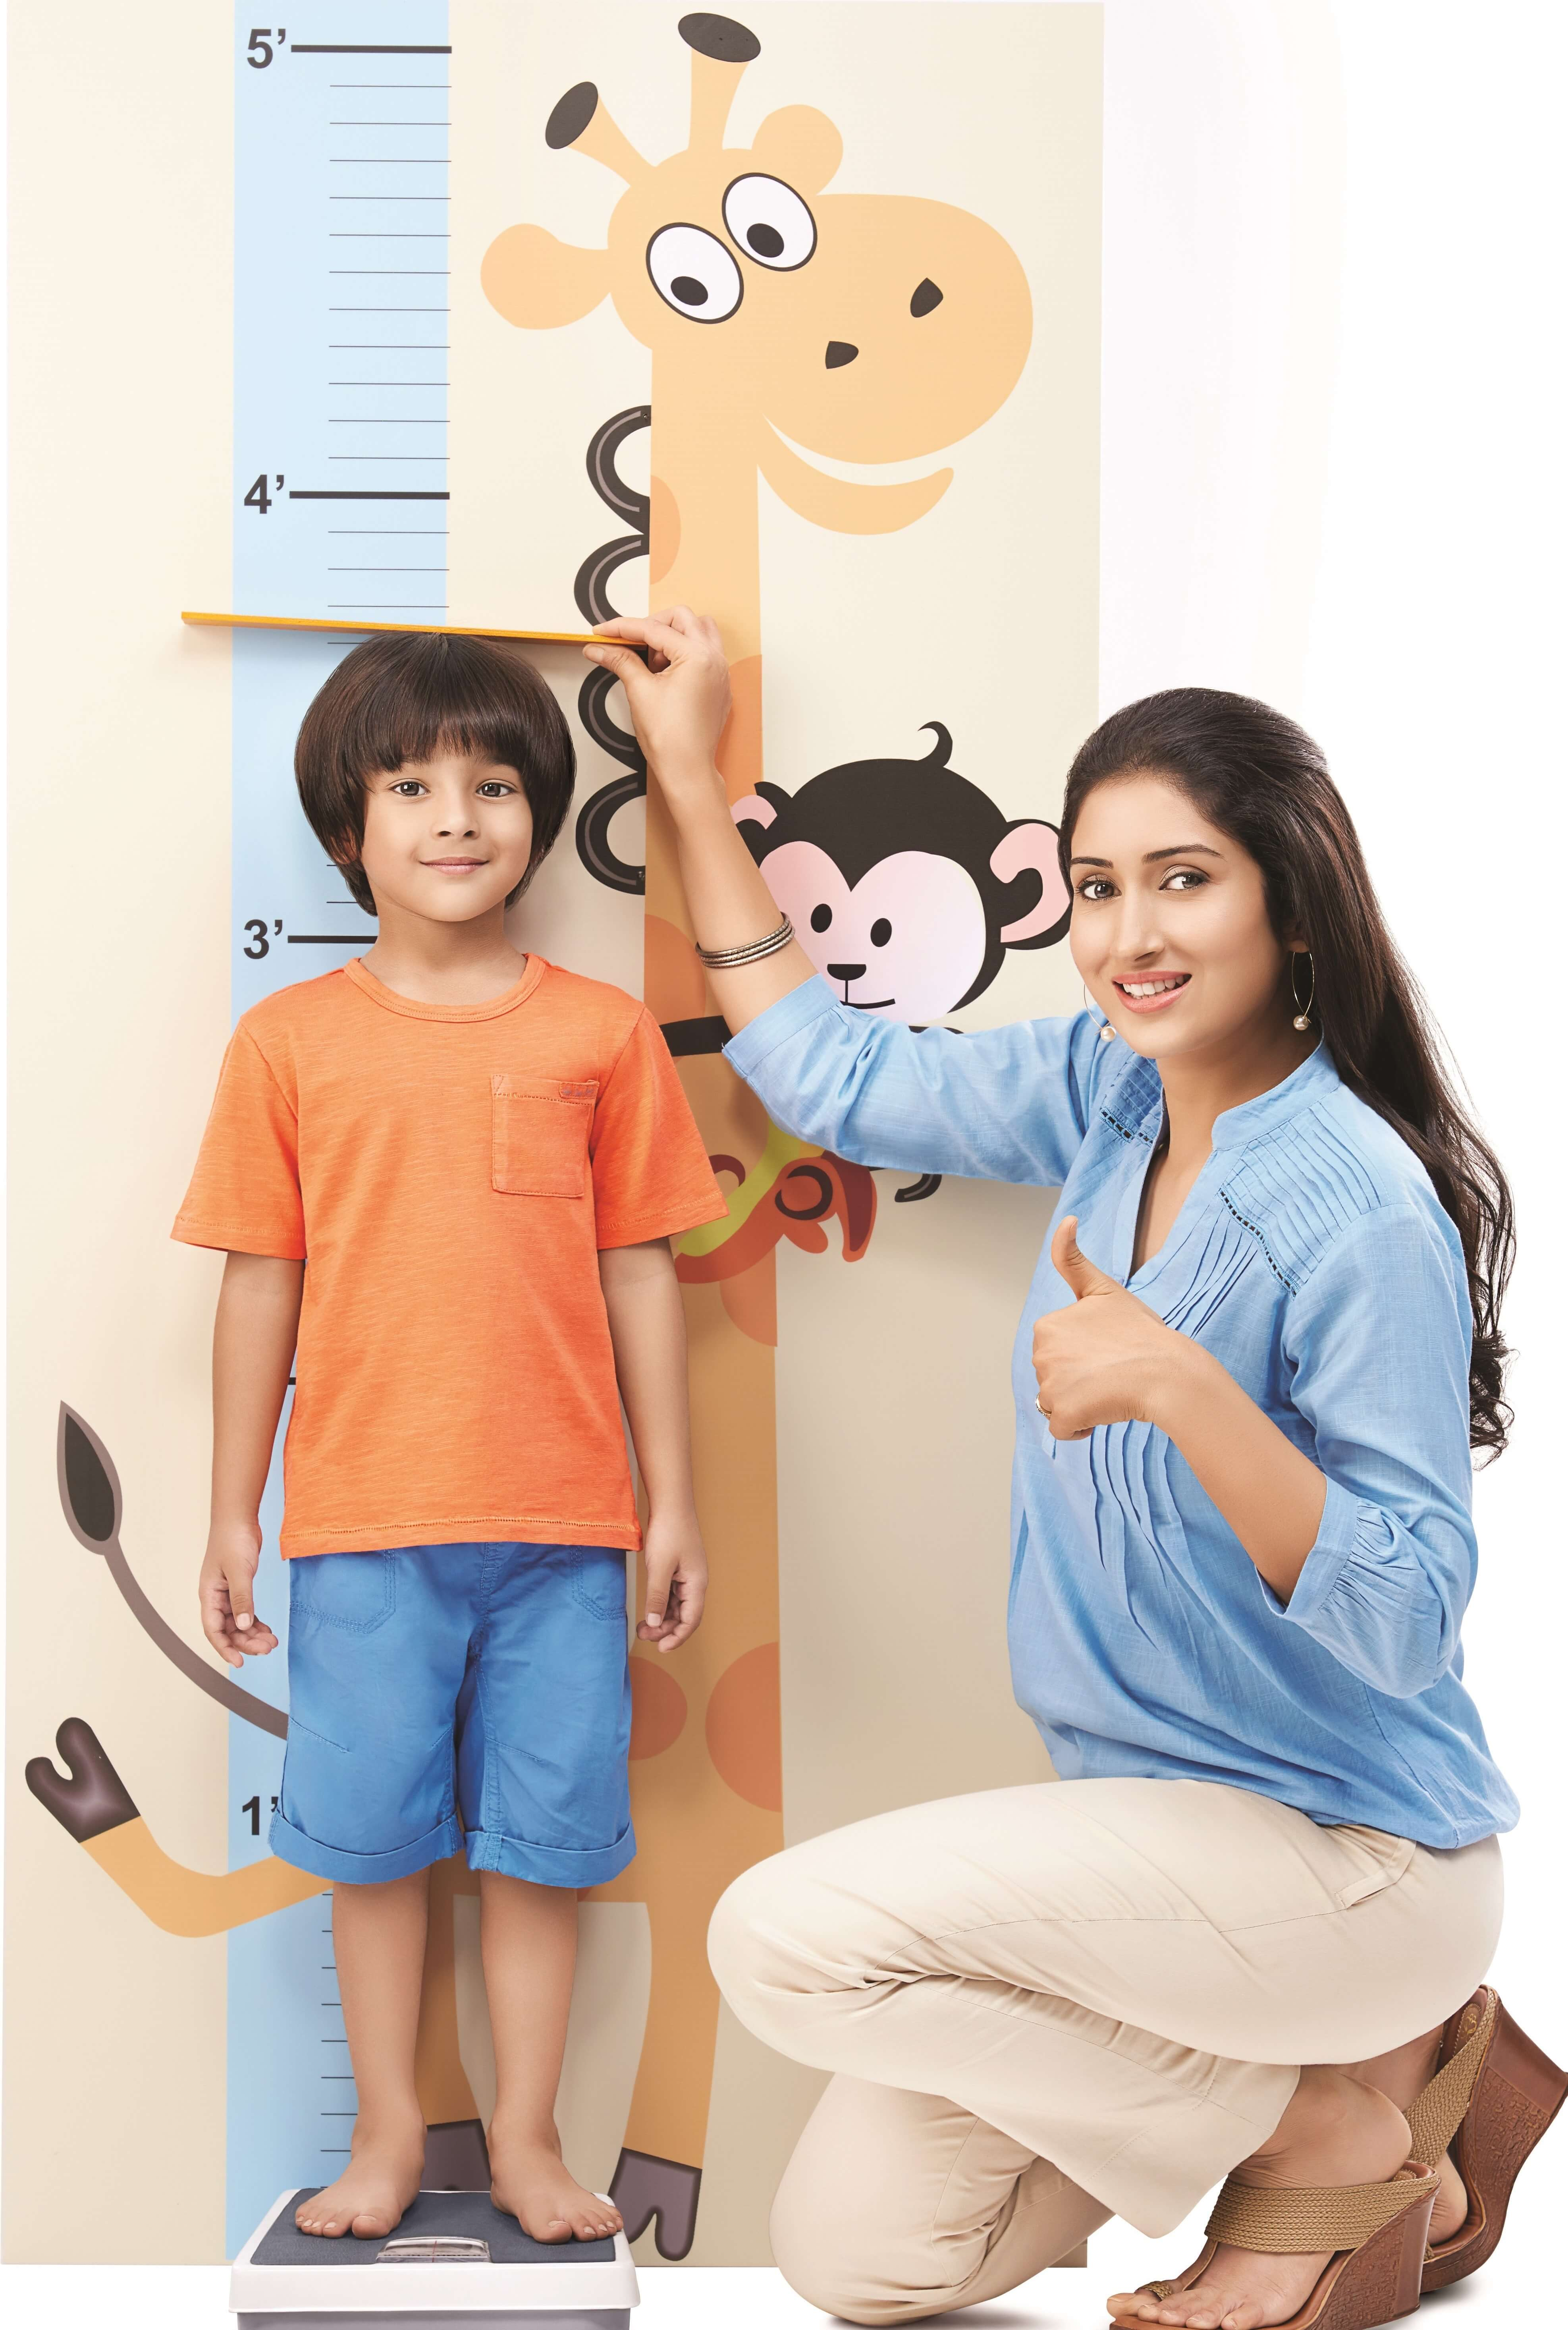 Child growth chart measuring height and weight of kid monitoring child growthg nvjuhfo Choice Image